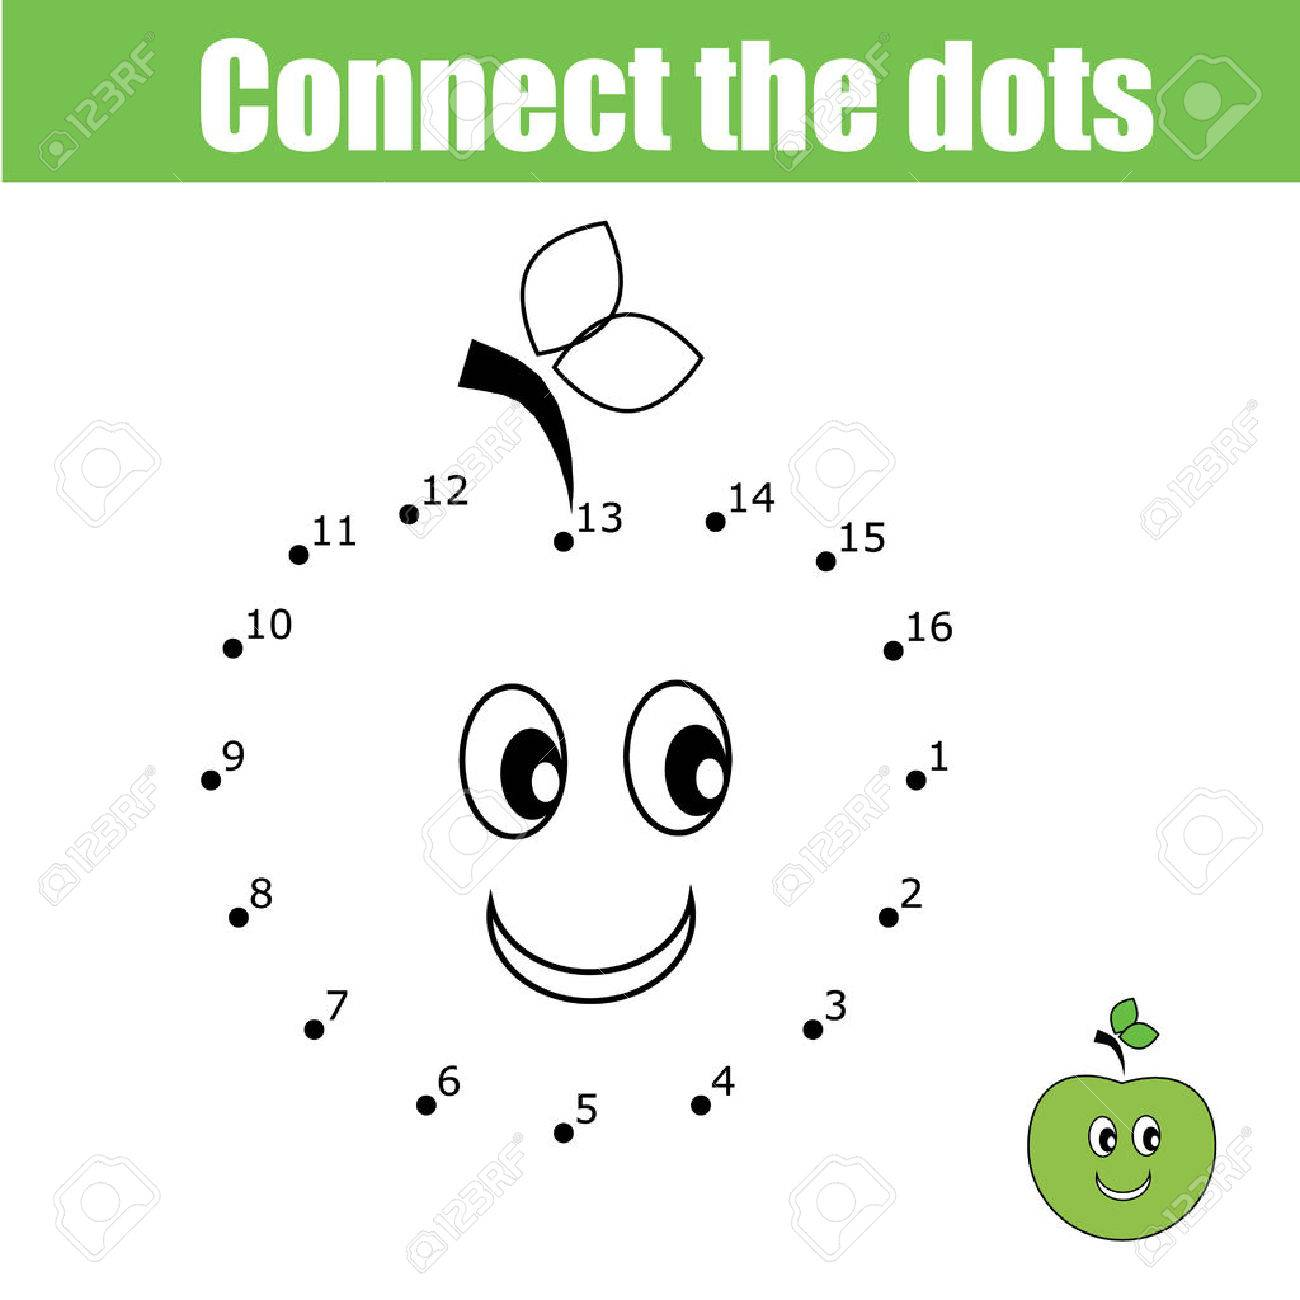 Connect the dots educational drawing children game. Dot to dot numbers activity for kids. Preschool age - 61717548